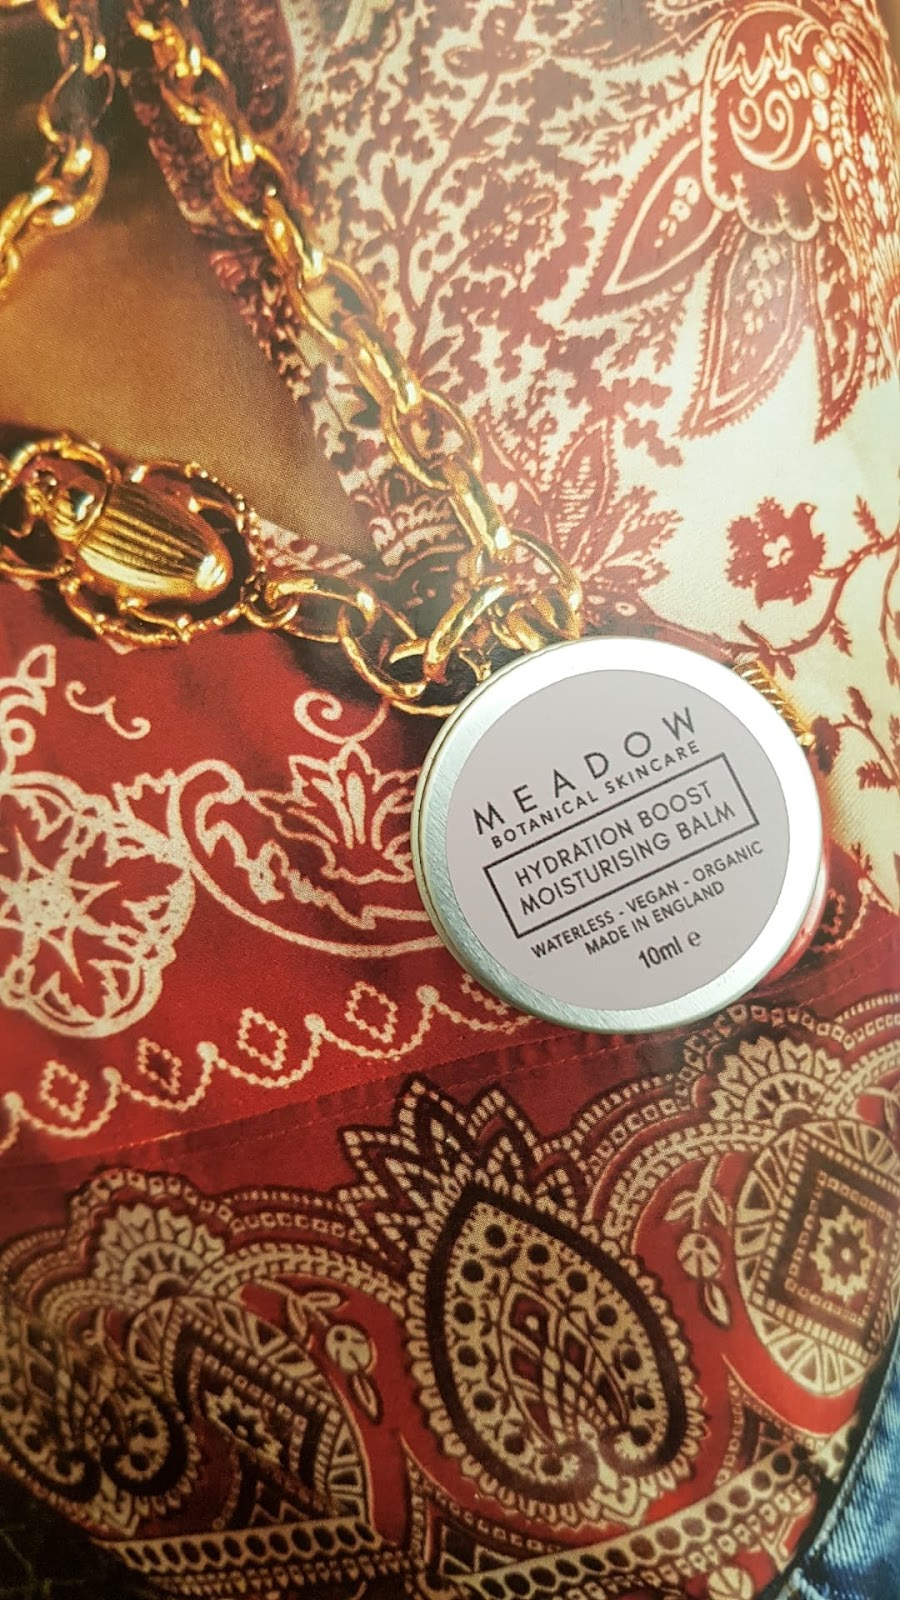 The Natural Beauty Box Review - Meadow Skincare Hydration Boost Moisturising Face Balm